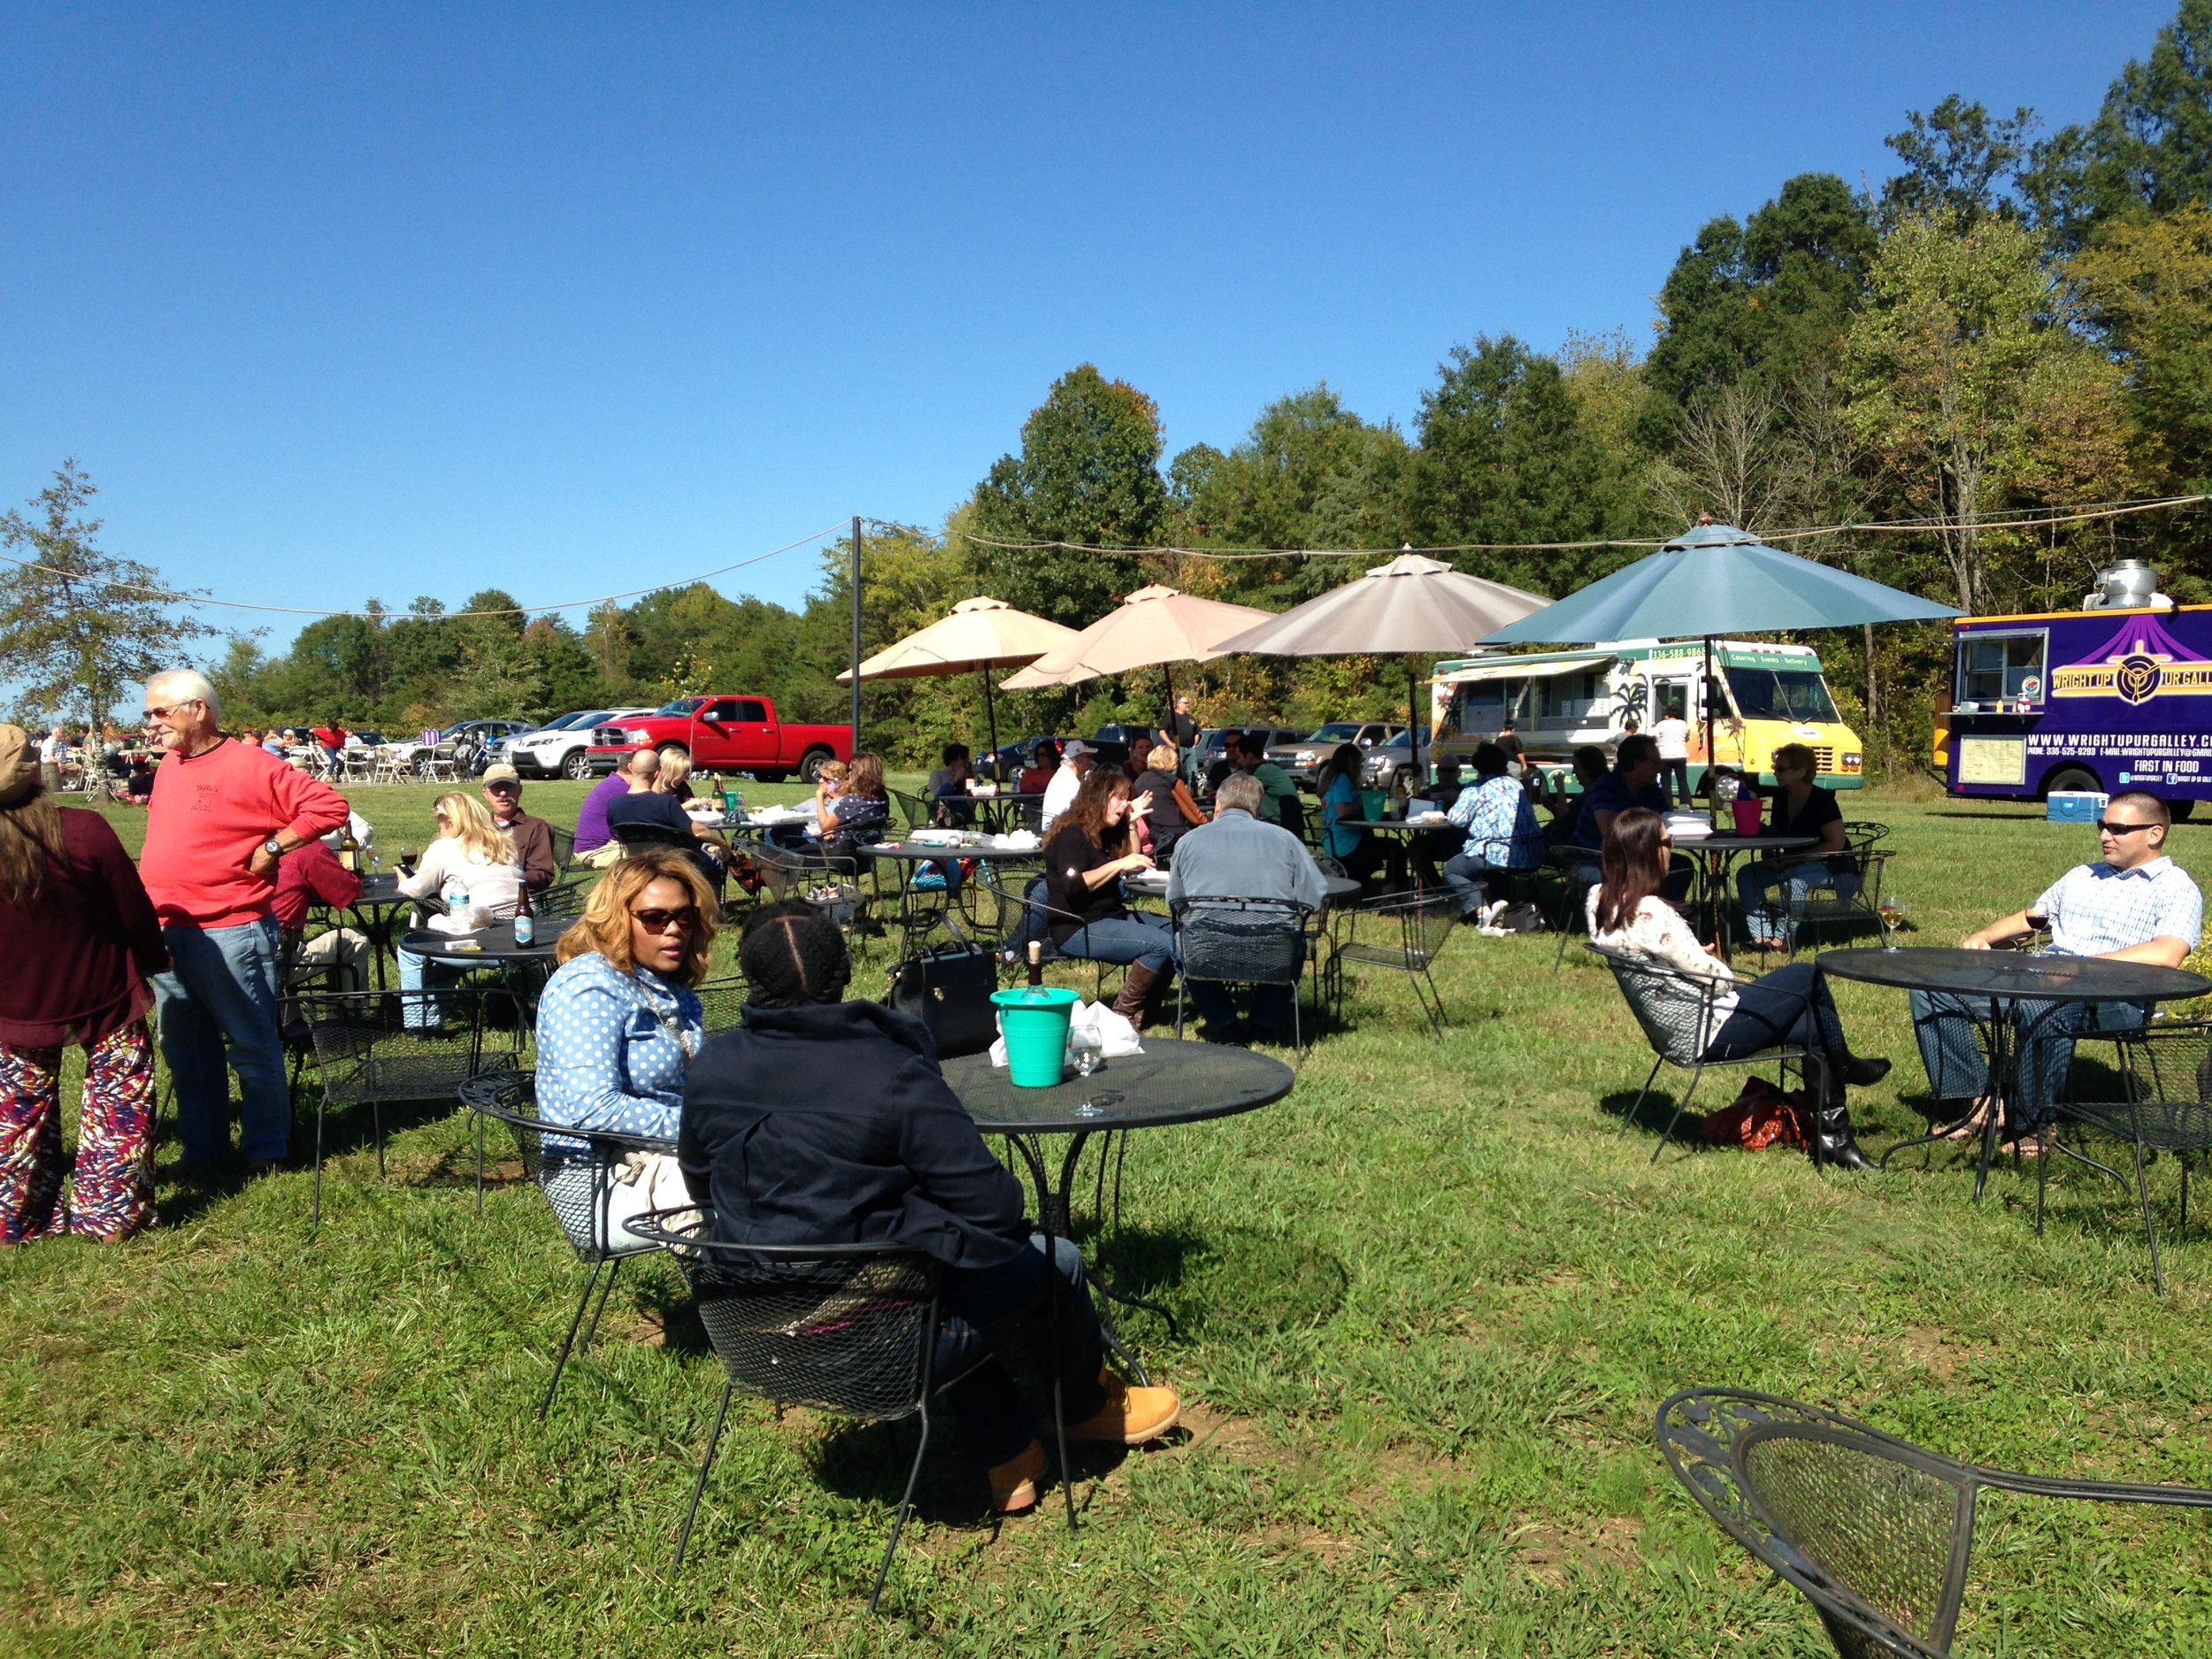 Photo of the patrons having a great day at the Fall Food Truck Festival in The Grove Winery and Vineyard,Gibsonville, North Carolina. Andrea took this photo from the stage.